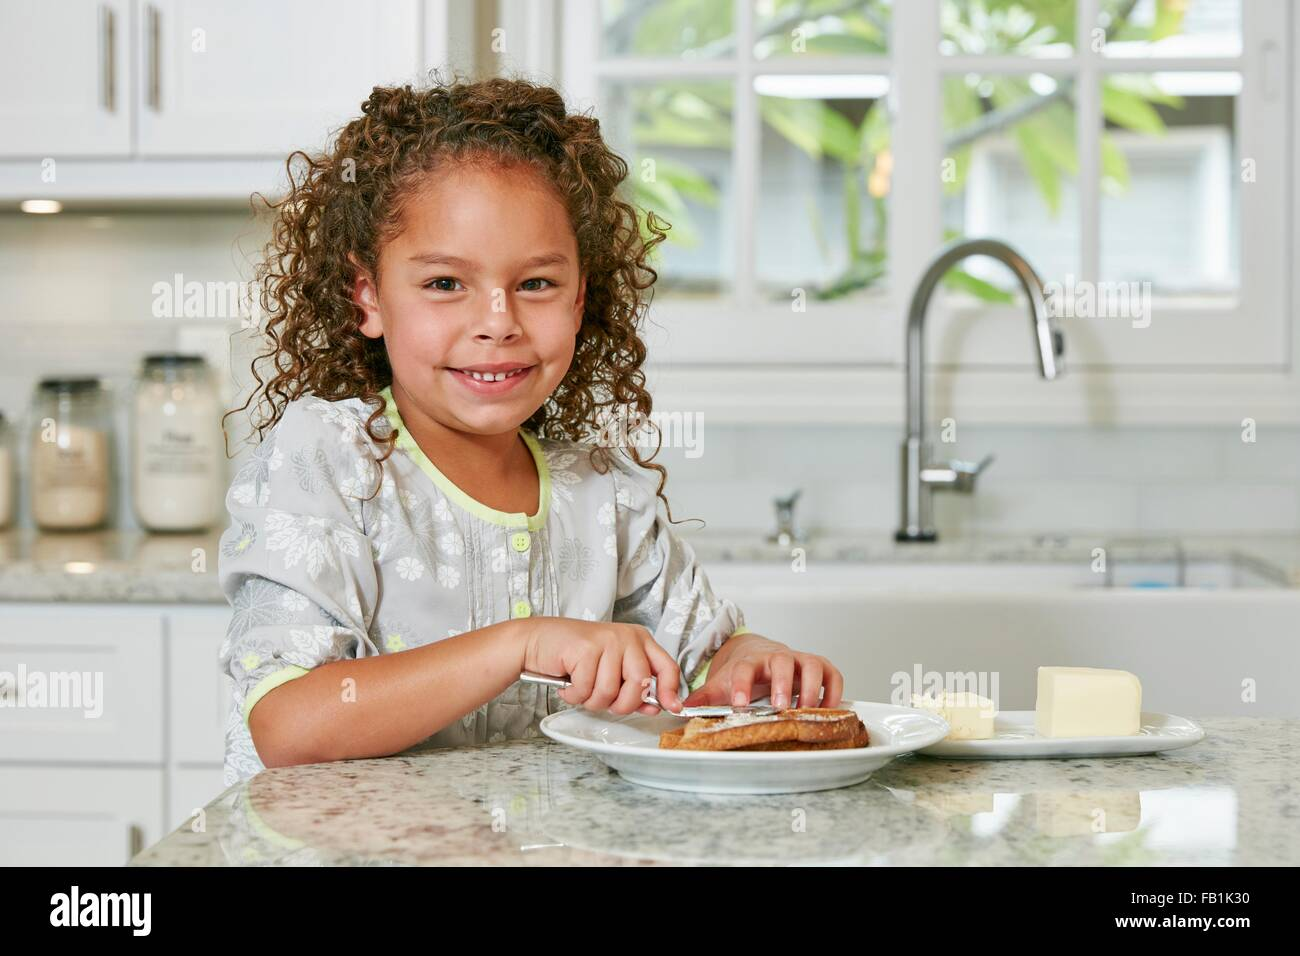 Girl at kitchen counter spreading butter on toast looking at camera smiling - Stock Image